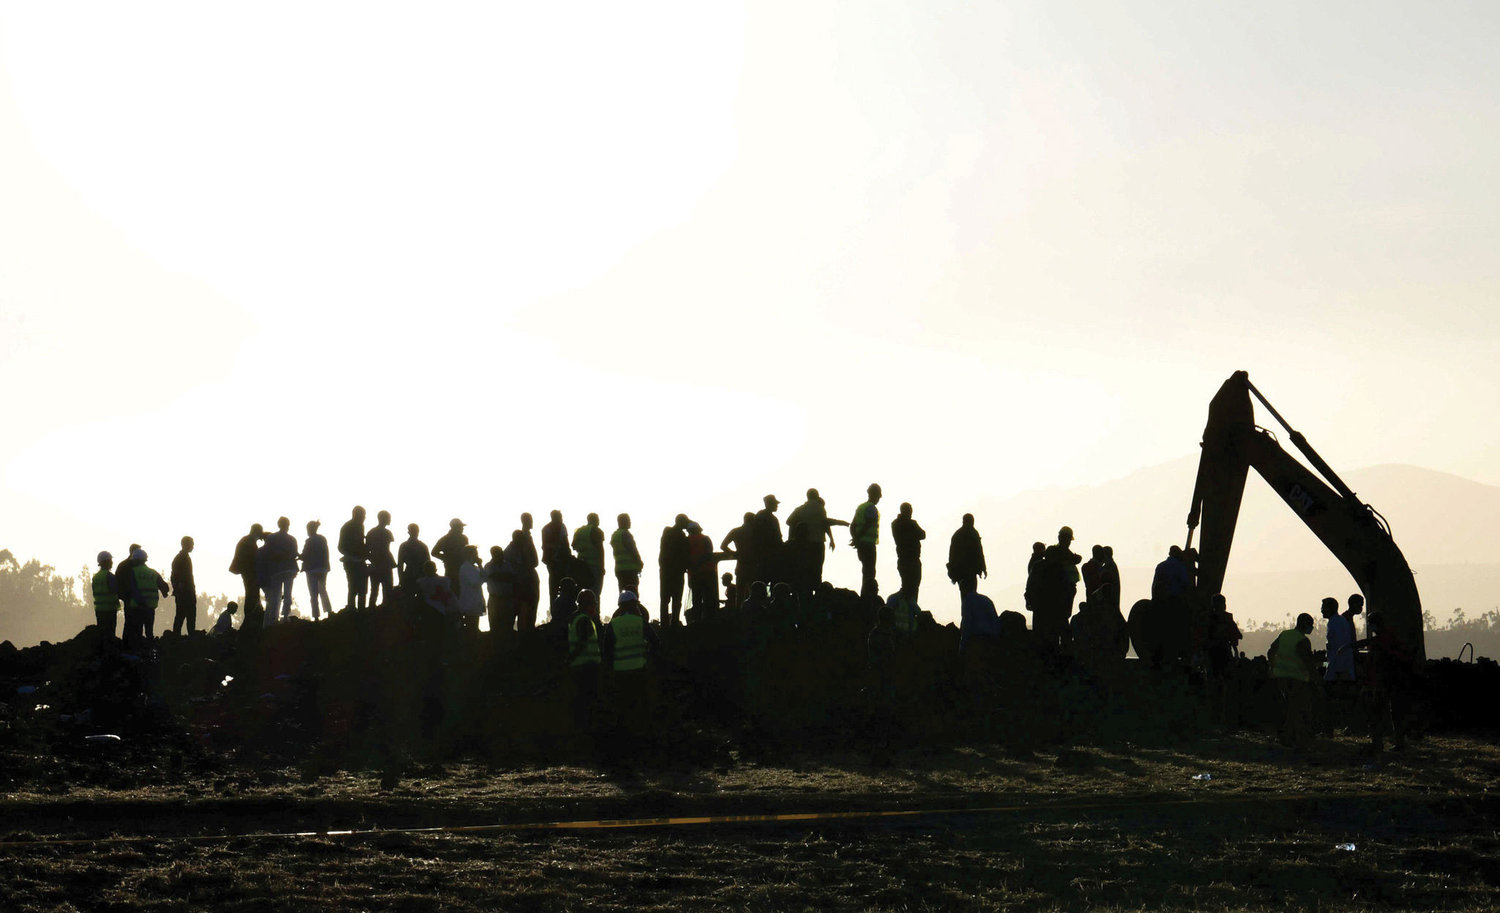 People watch a tractor excavate the Ethiopian Airlines Flight ET 302 plane crash March 10 near Bishoftu, Ethiopia.